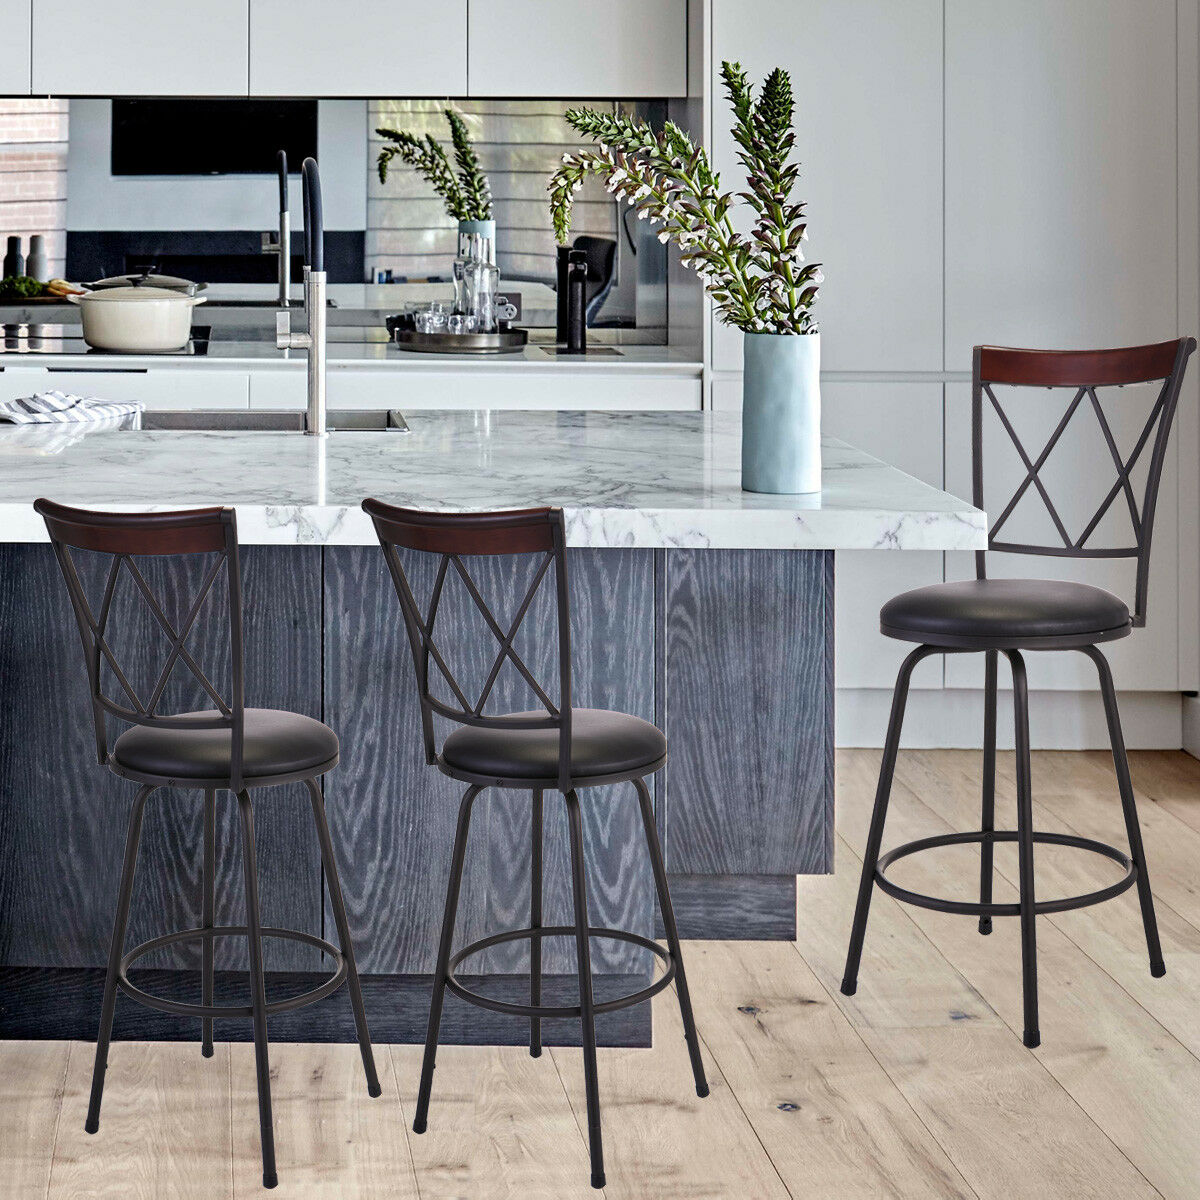 Picture of: Four Black Metal Kitchen Counter Chairs For Sale Online Ebay